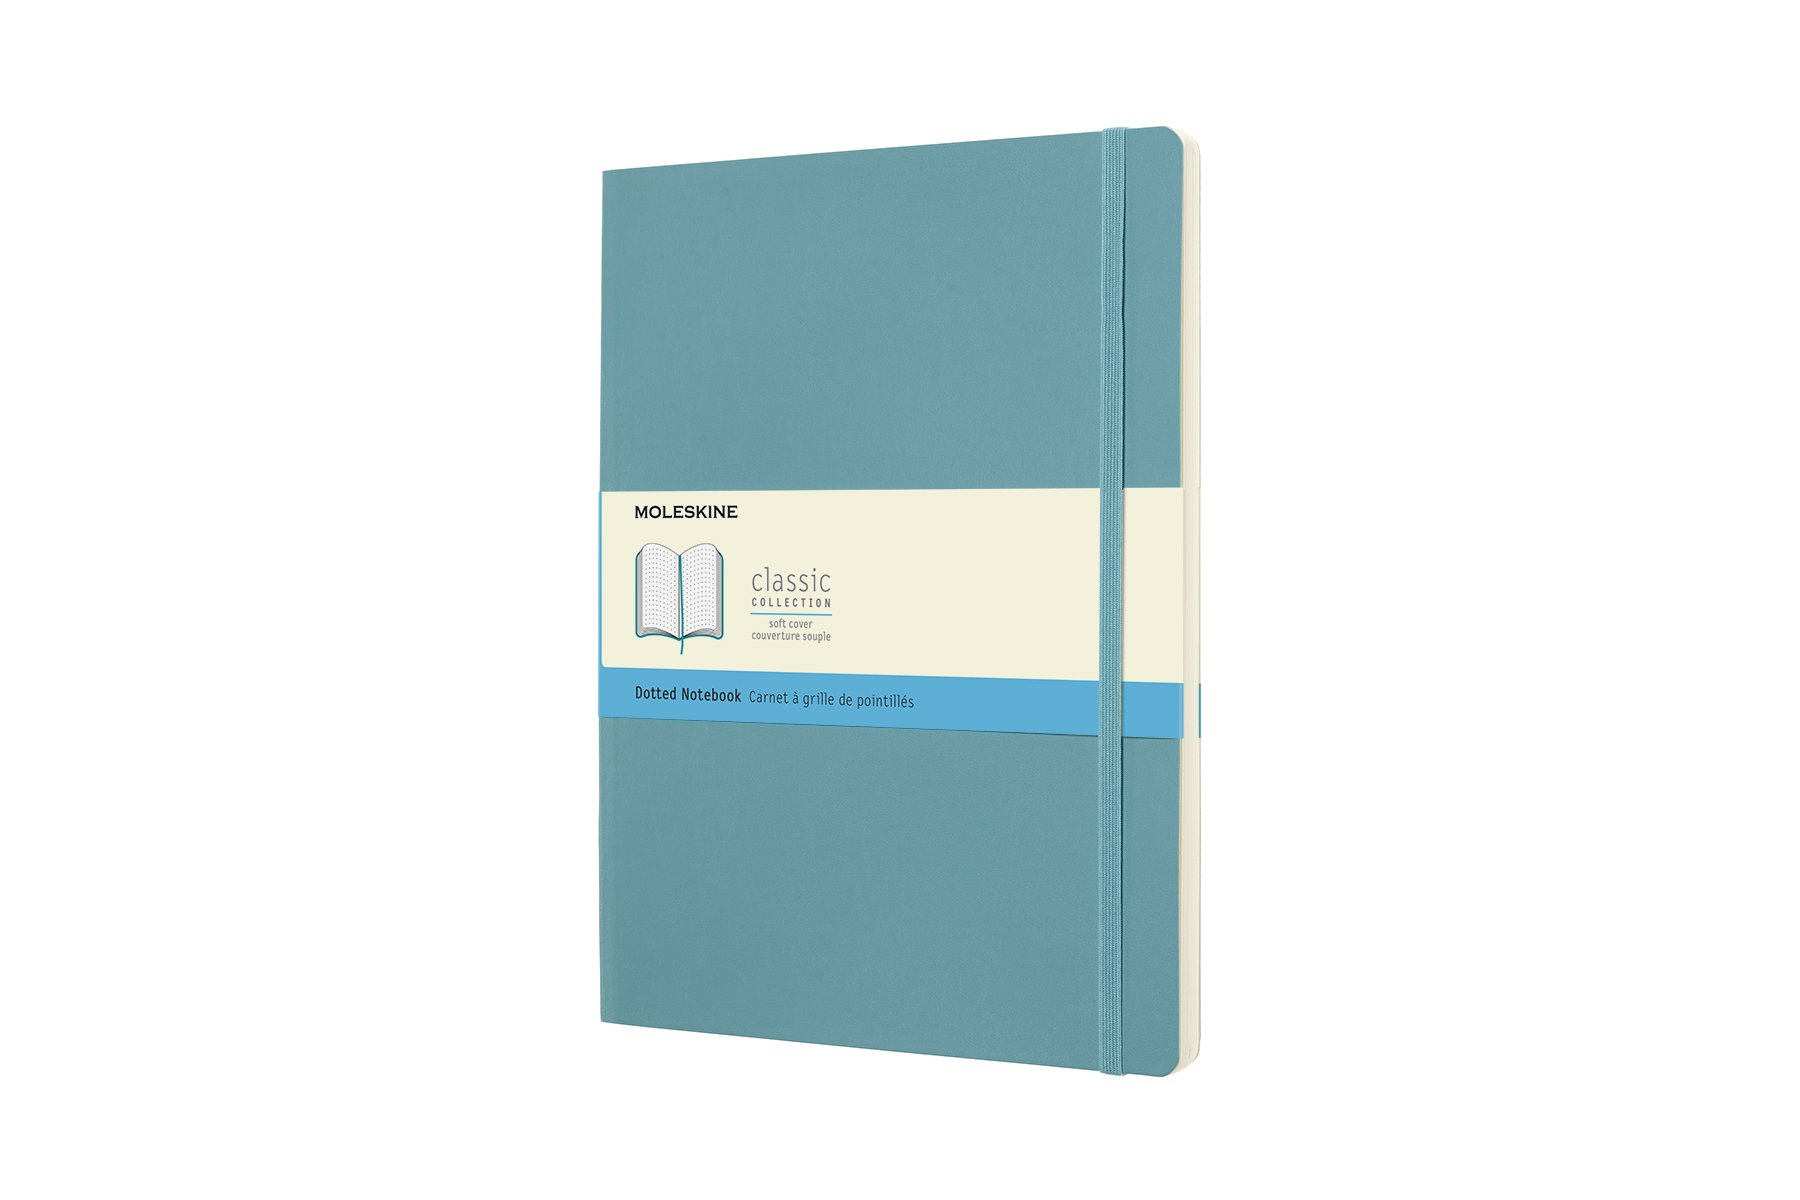 Moleskine Classic Notebook, Soft Cover, XL (7.5'' x 9.5'') Dotted, Reef Blue